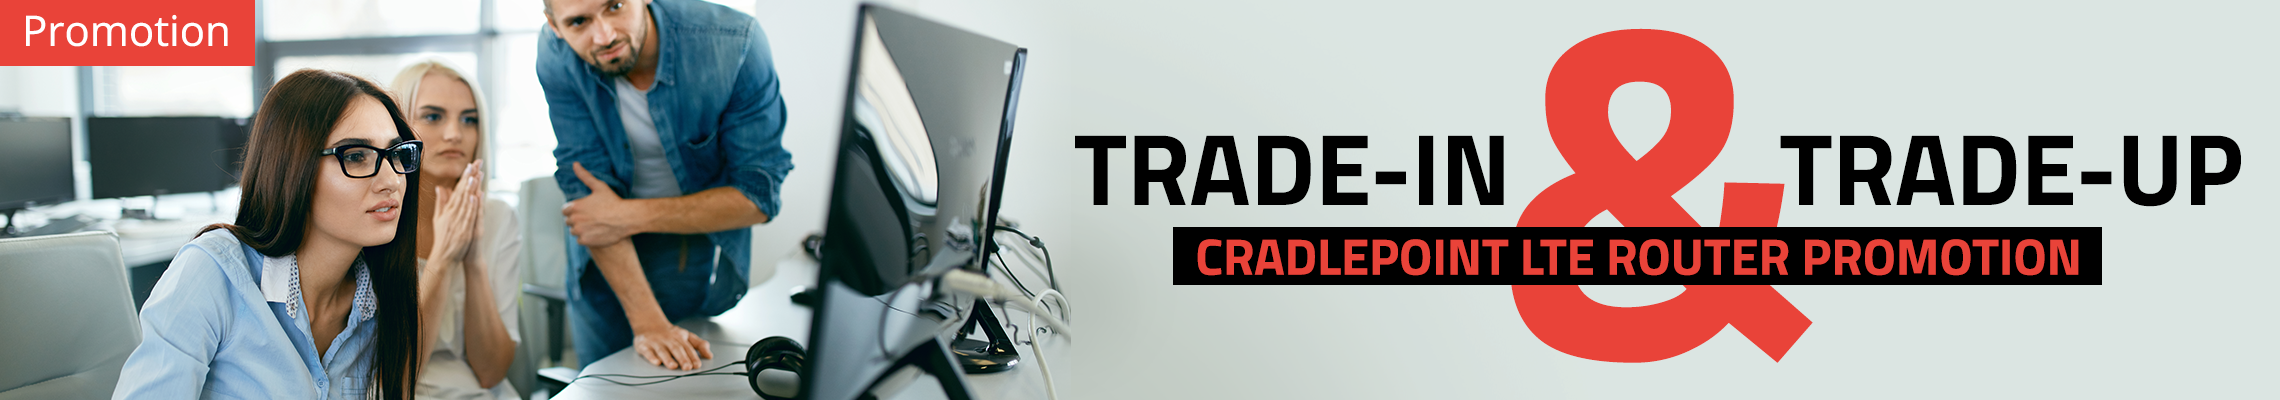 Trade In and trade Up Cradlepoint